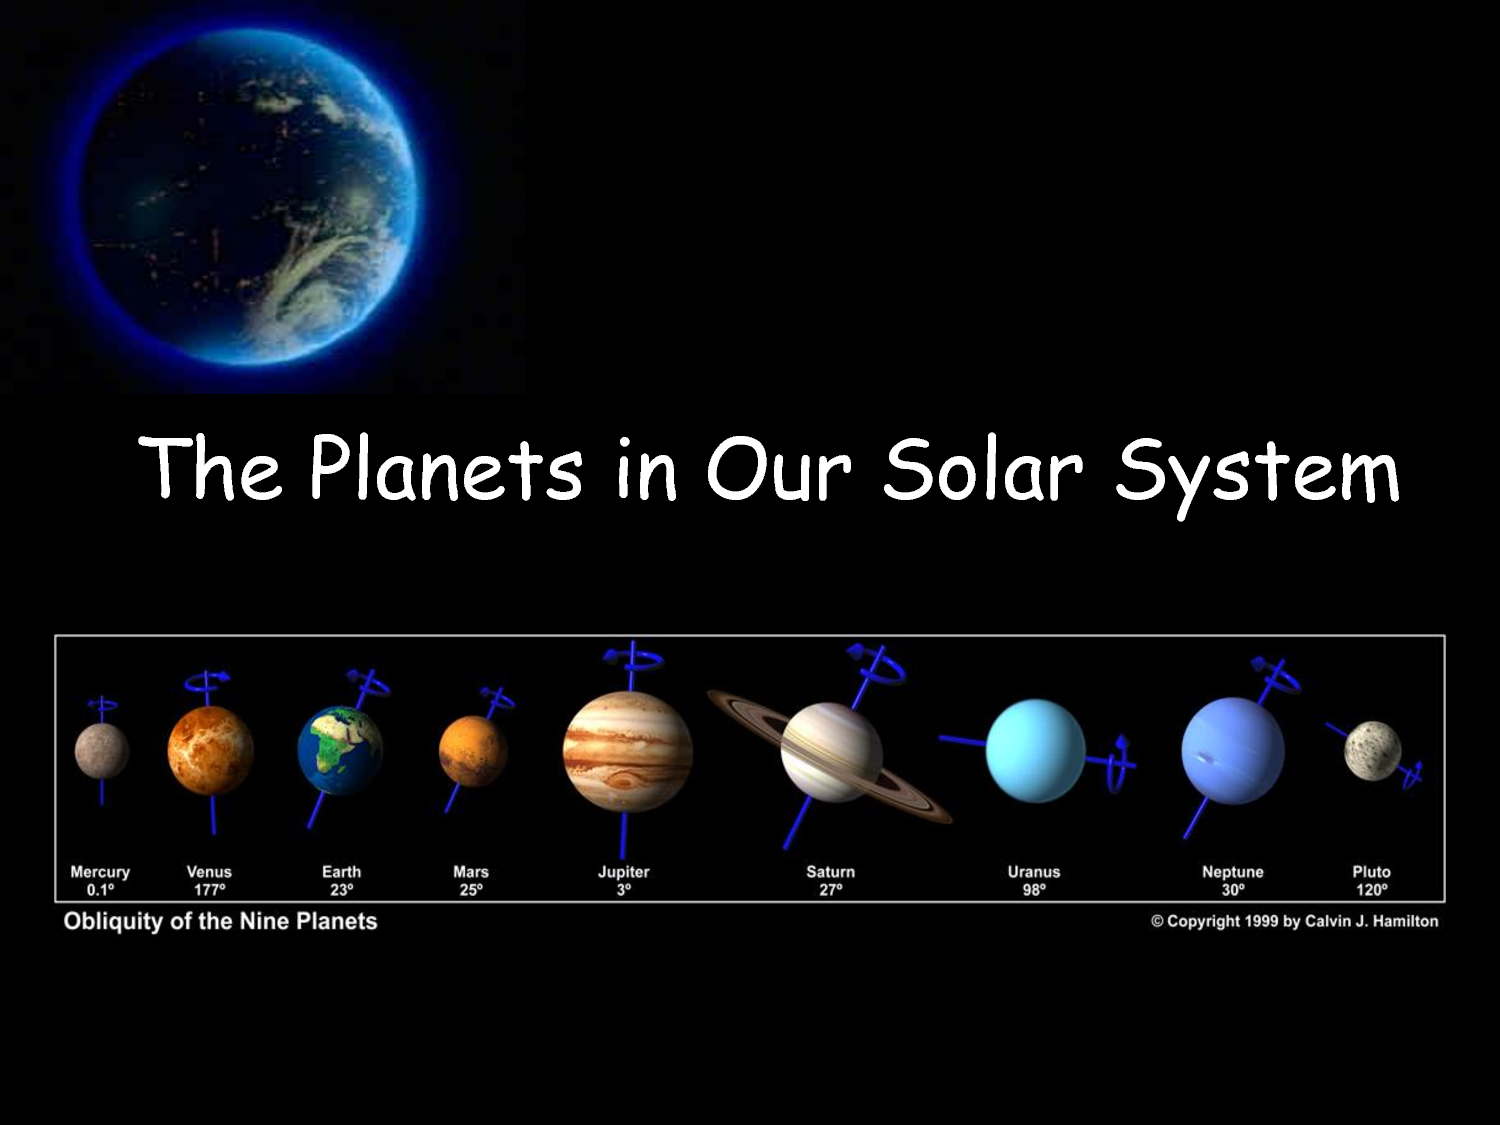 Our Solar System: Seymour Simon Pictures of our solar system in order